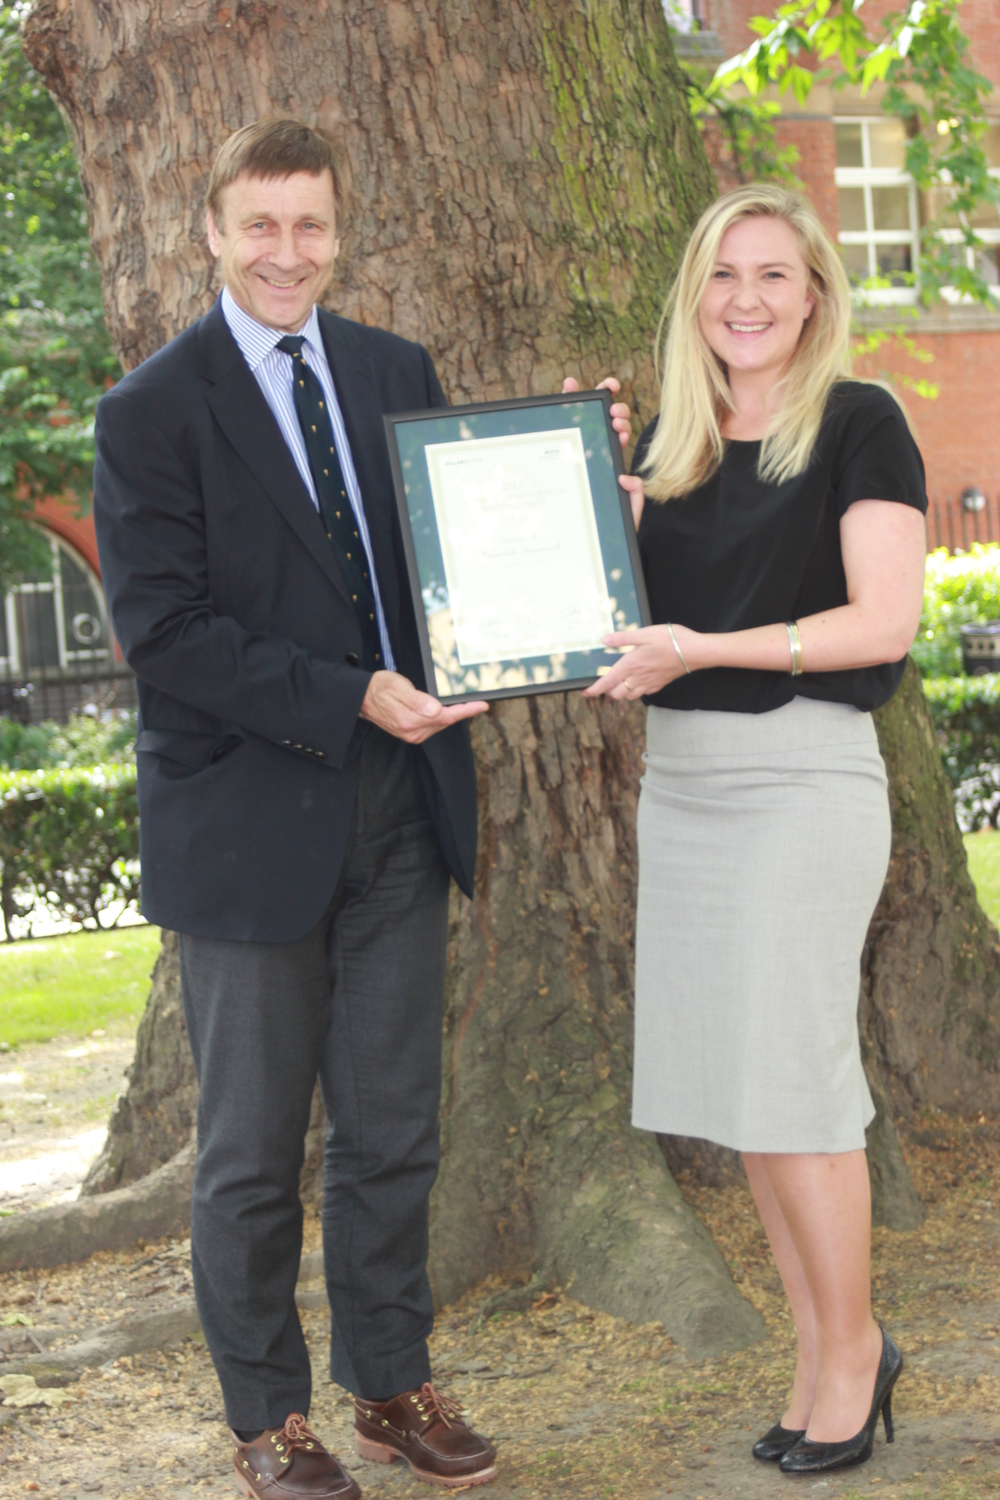 Charlotte Somerville receives her  Cambridge Orthopaedic Writing Prize  certificate from  Mr Richard Villar